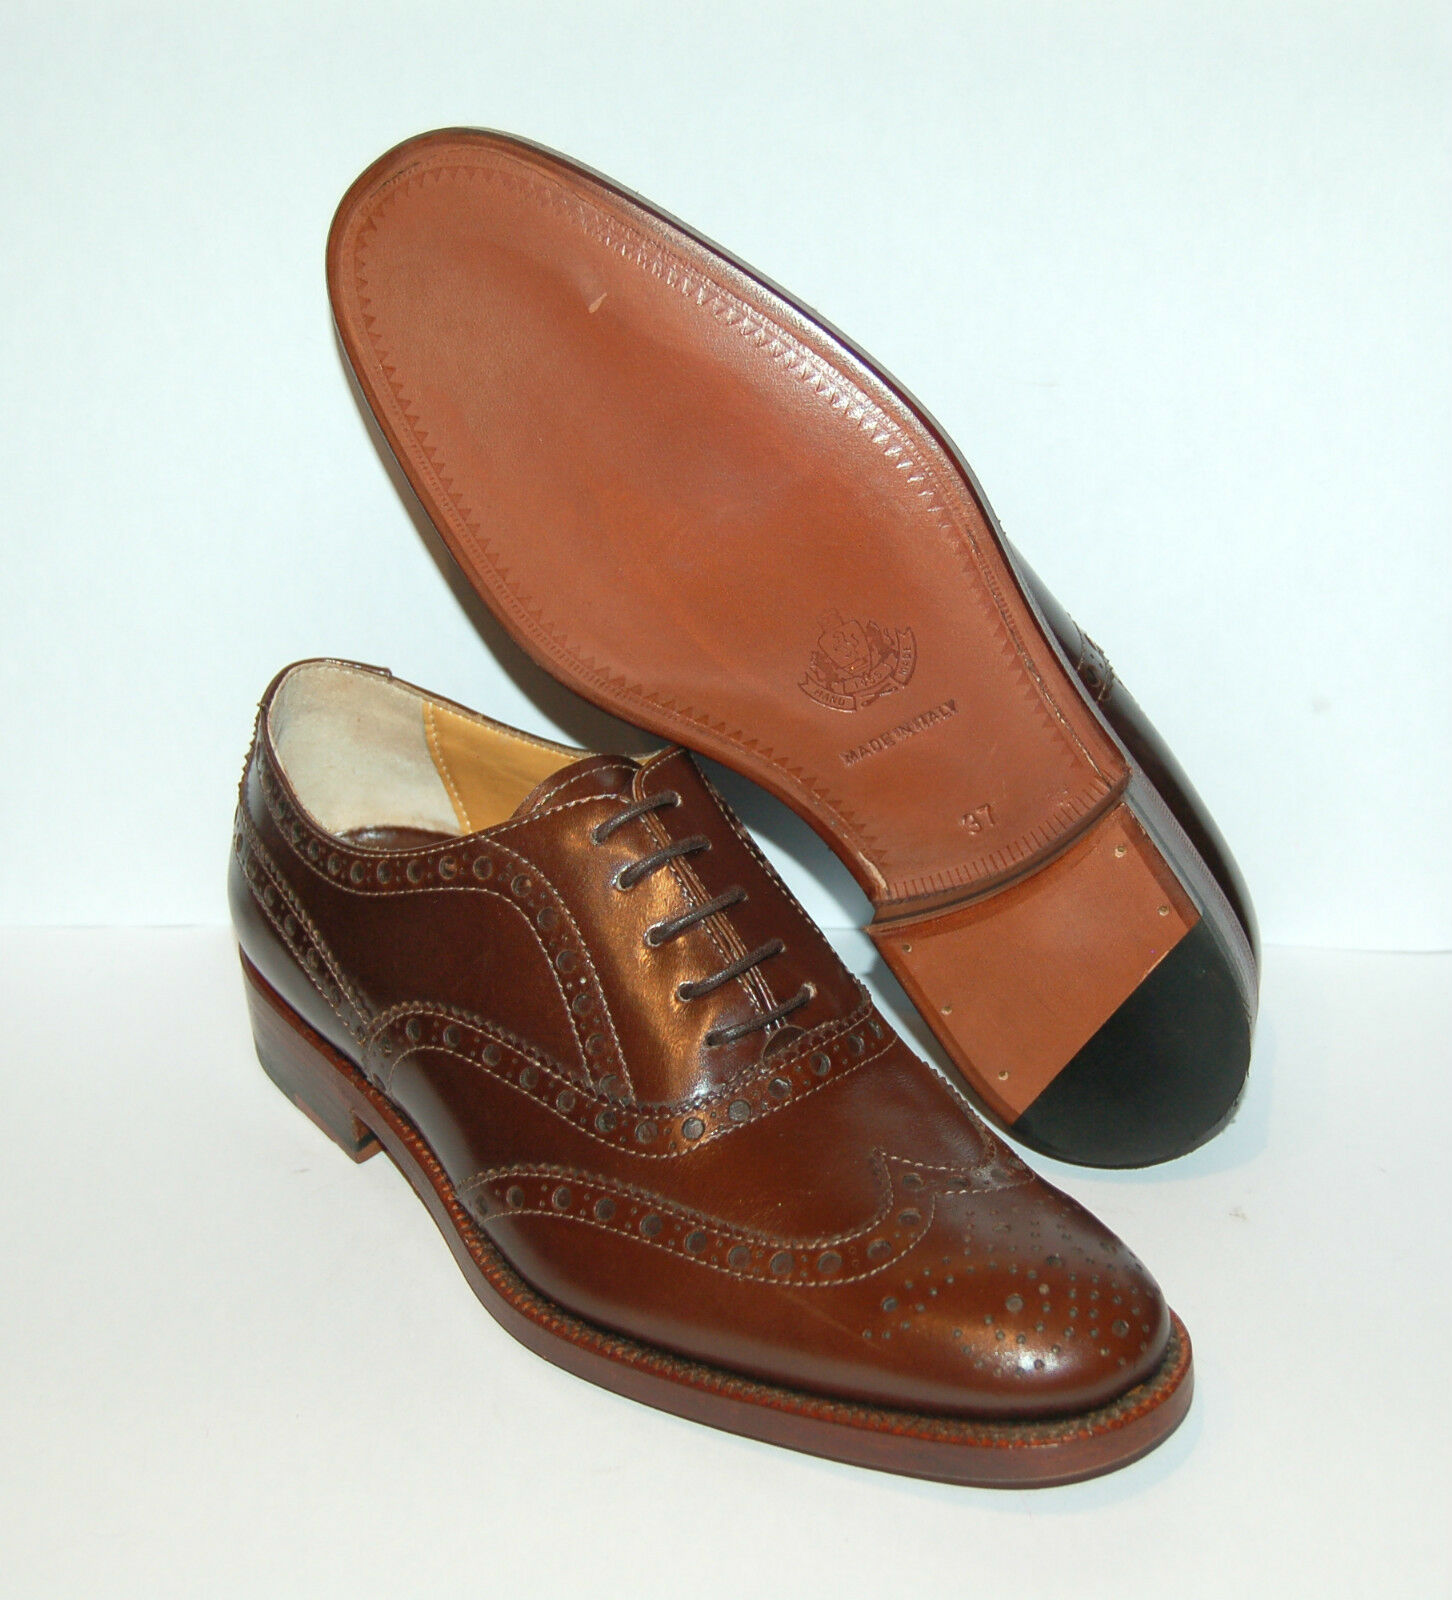 WOMAN PERFS -36- WINGTIP OXFORD - PERFS WOMAN & MED - BROWN CALF - LEATHER SOLE 685a3a